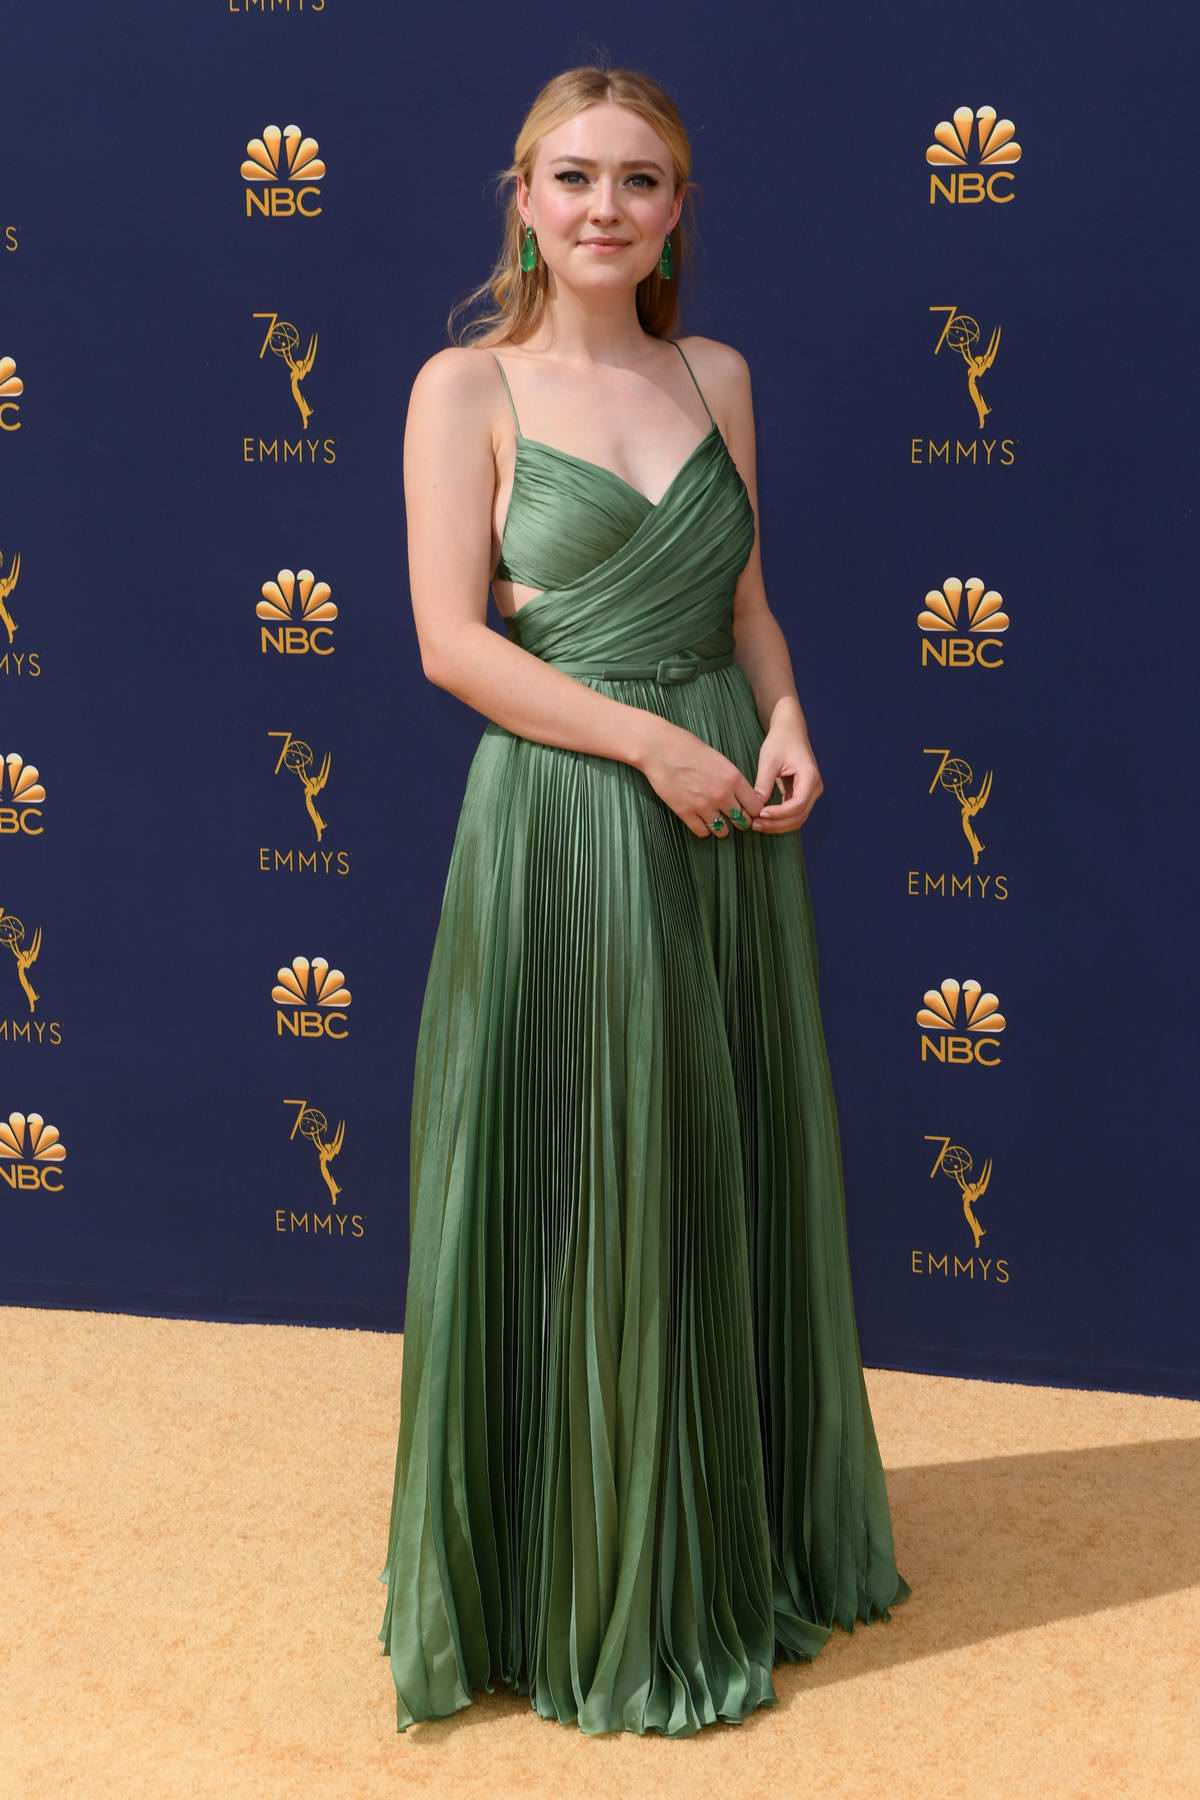 Dakota Fanning attends the 70th Primetime EMMY Awards (EMMYS 2018) at Microsoft Theater in Los Angeles